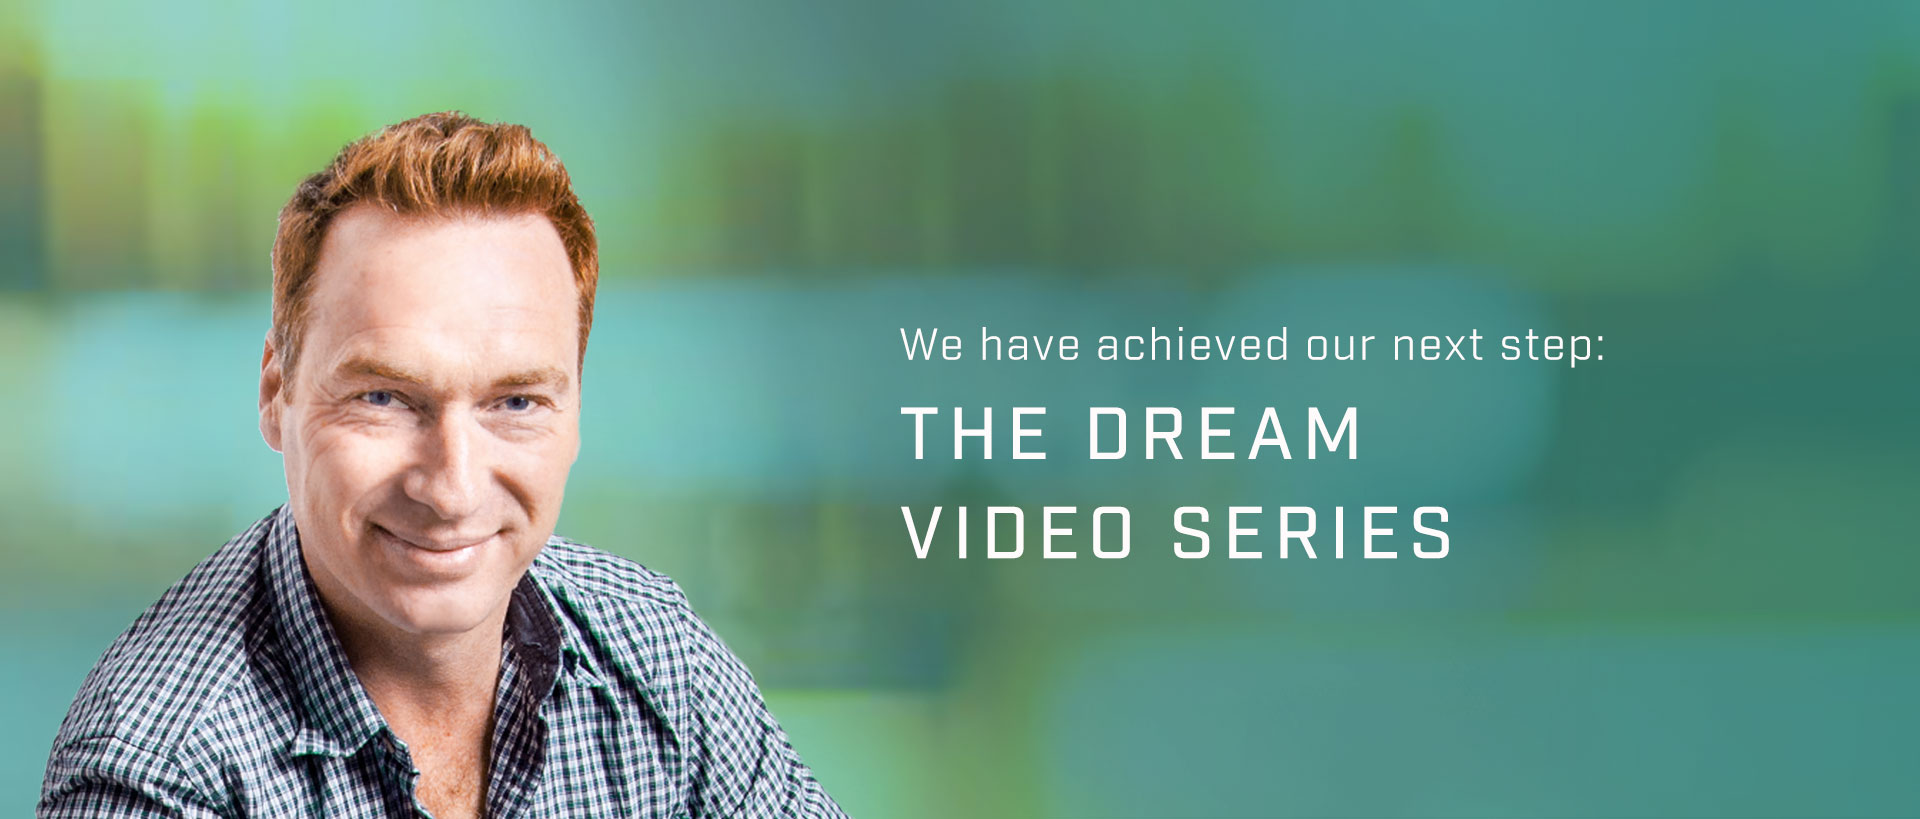 THE DREAM Video Series